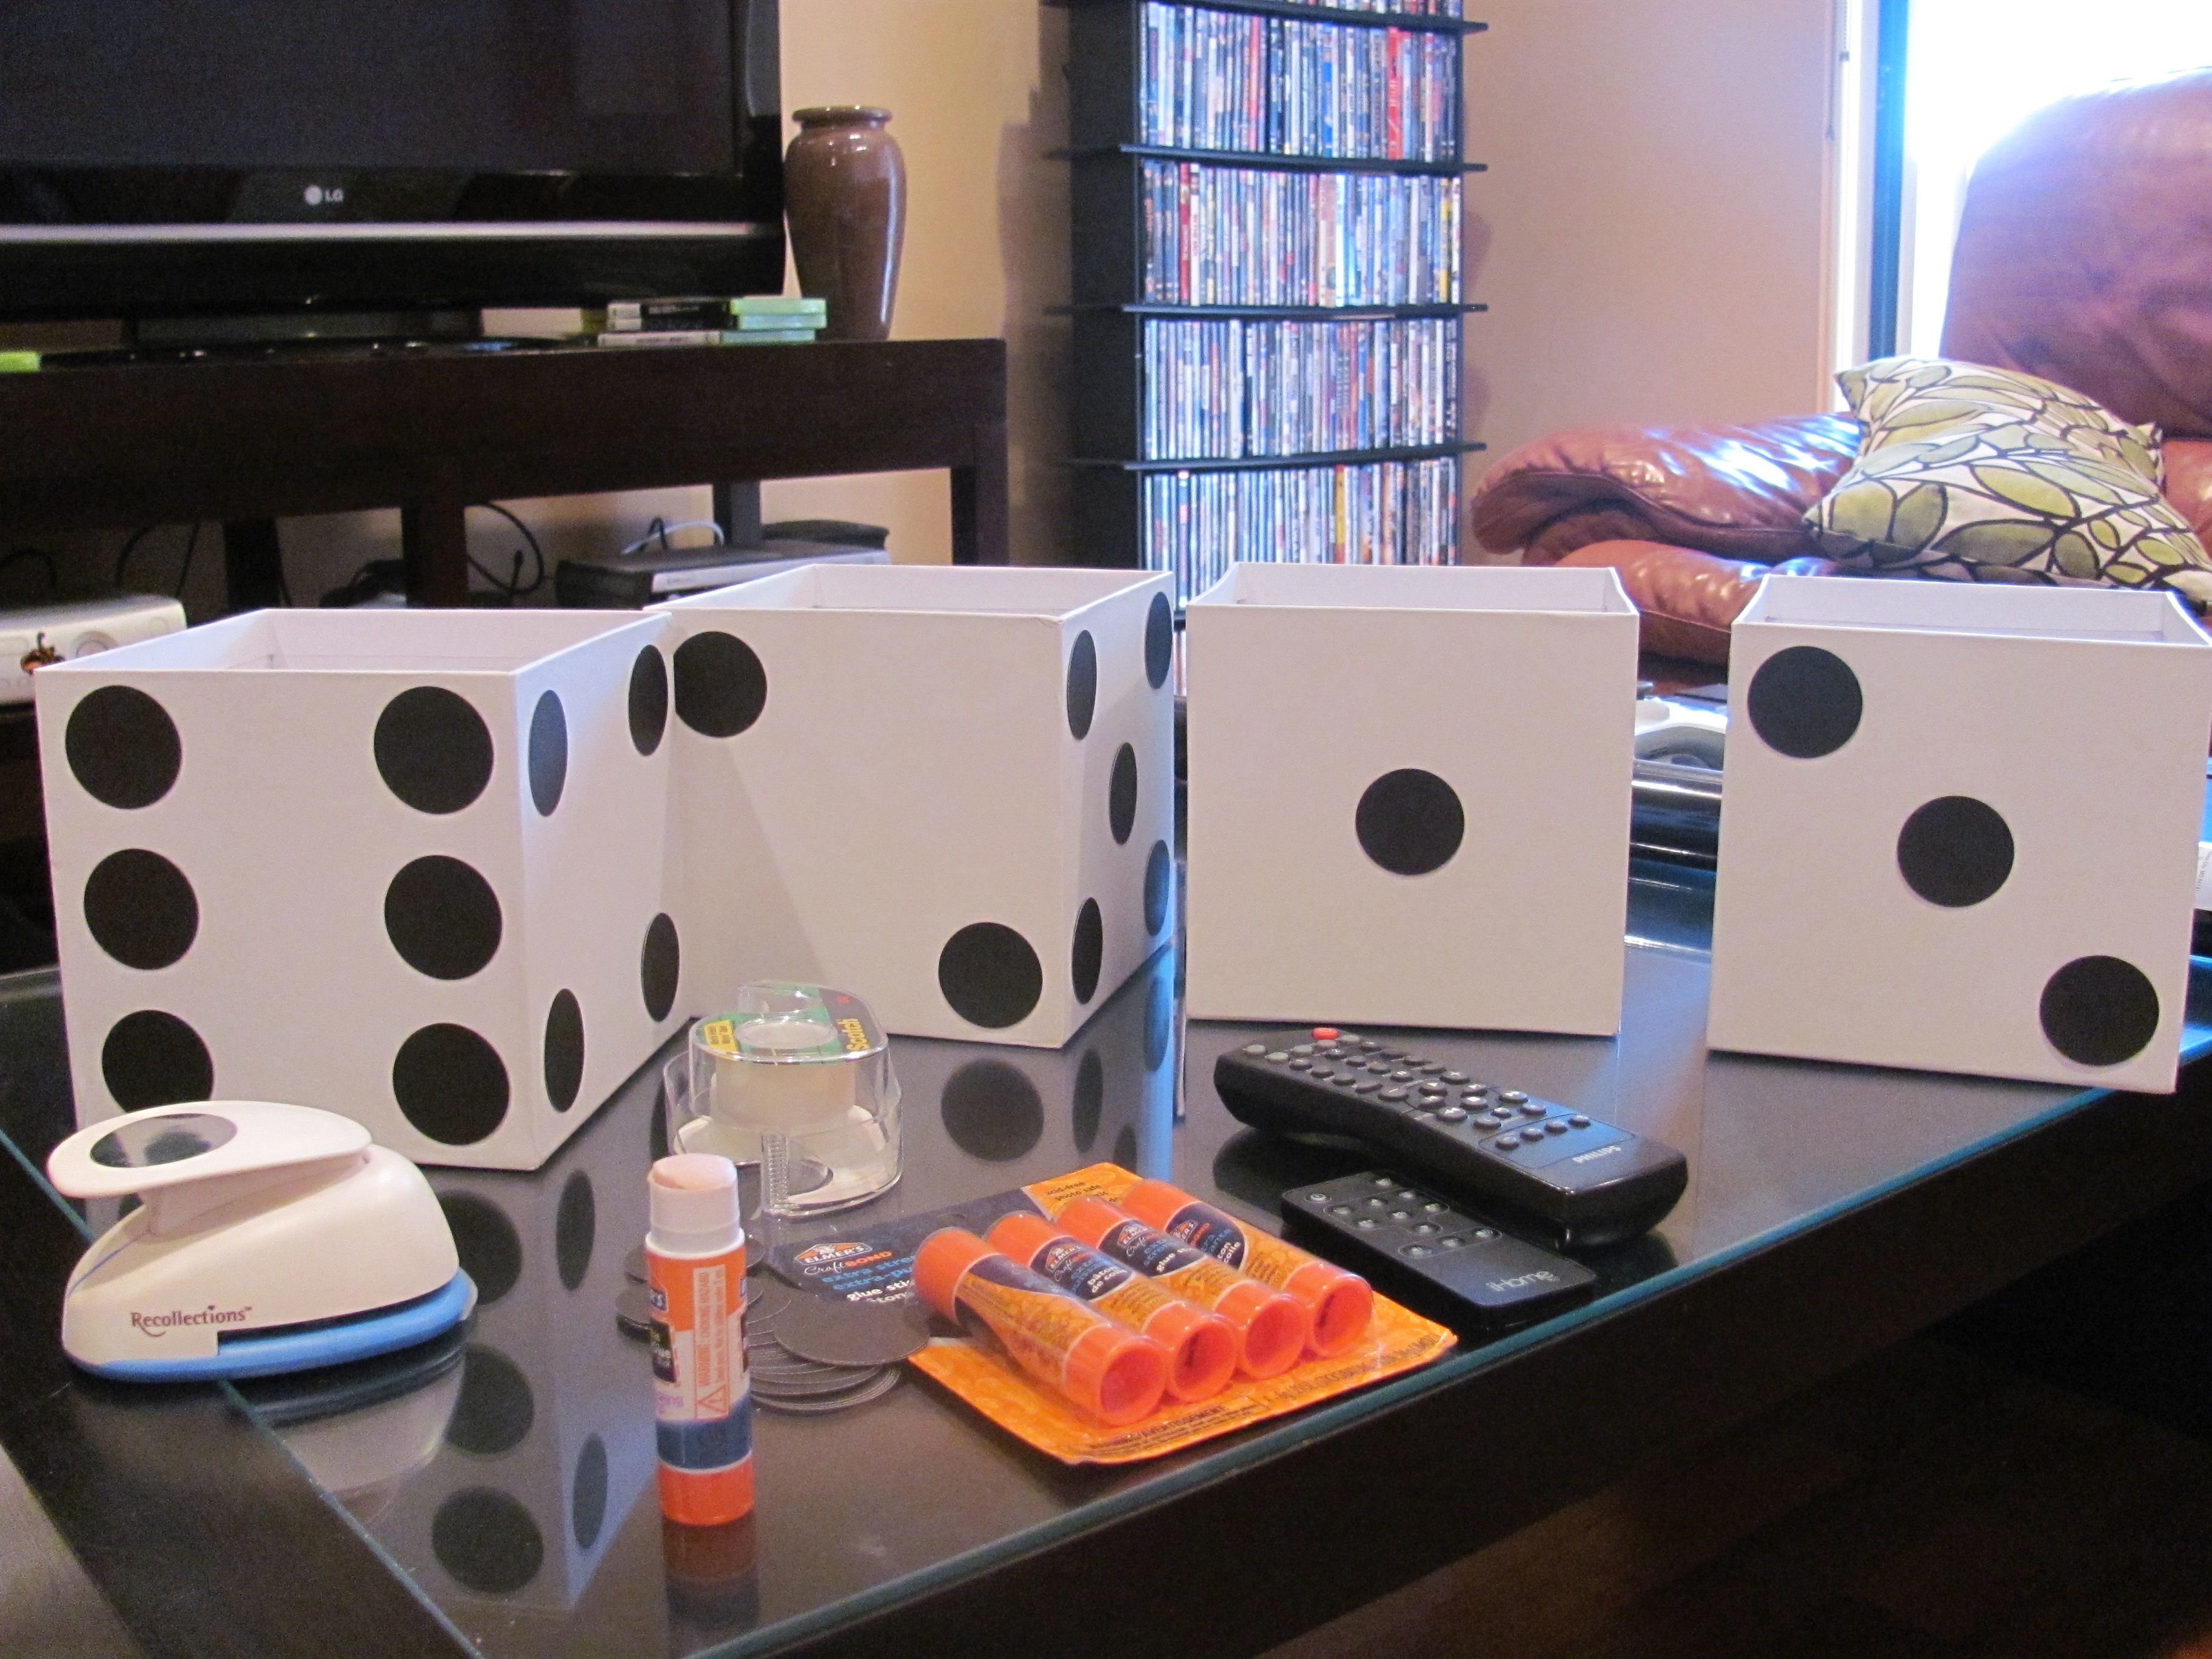 casino centerpieces super easy just punch holes and glue them on in a dice - Casino Party Decorations